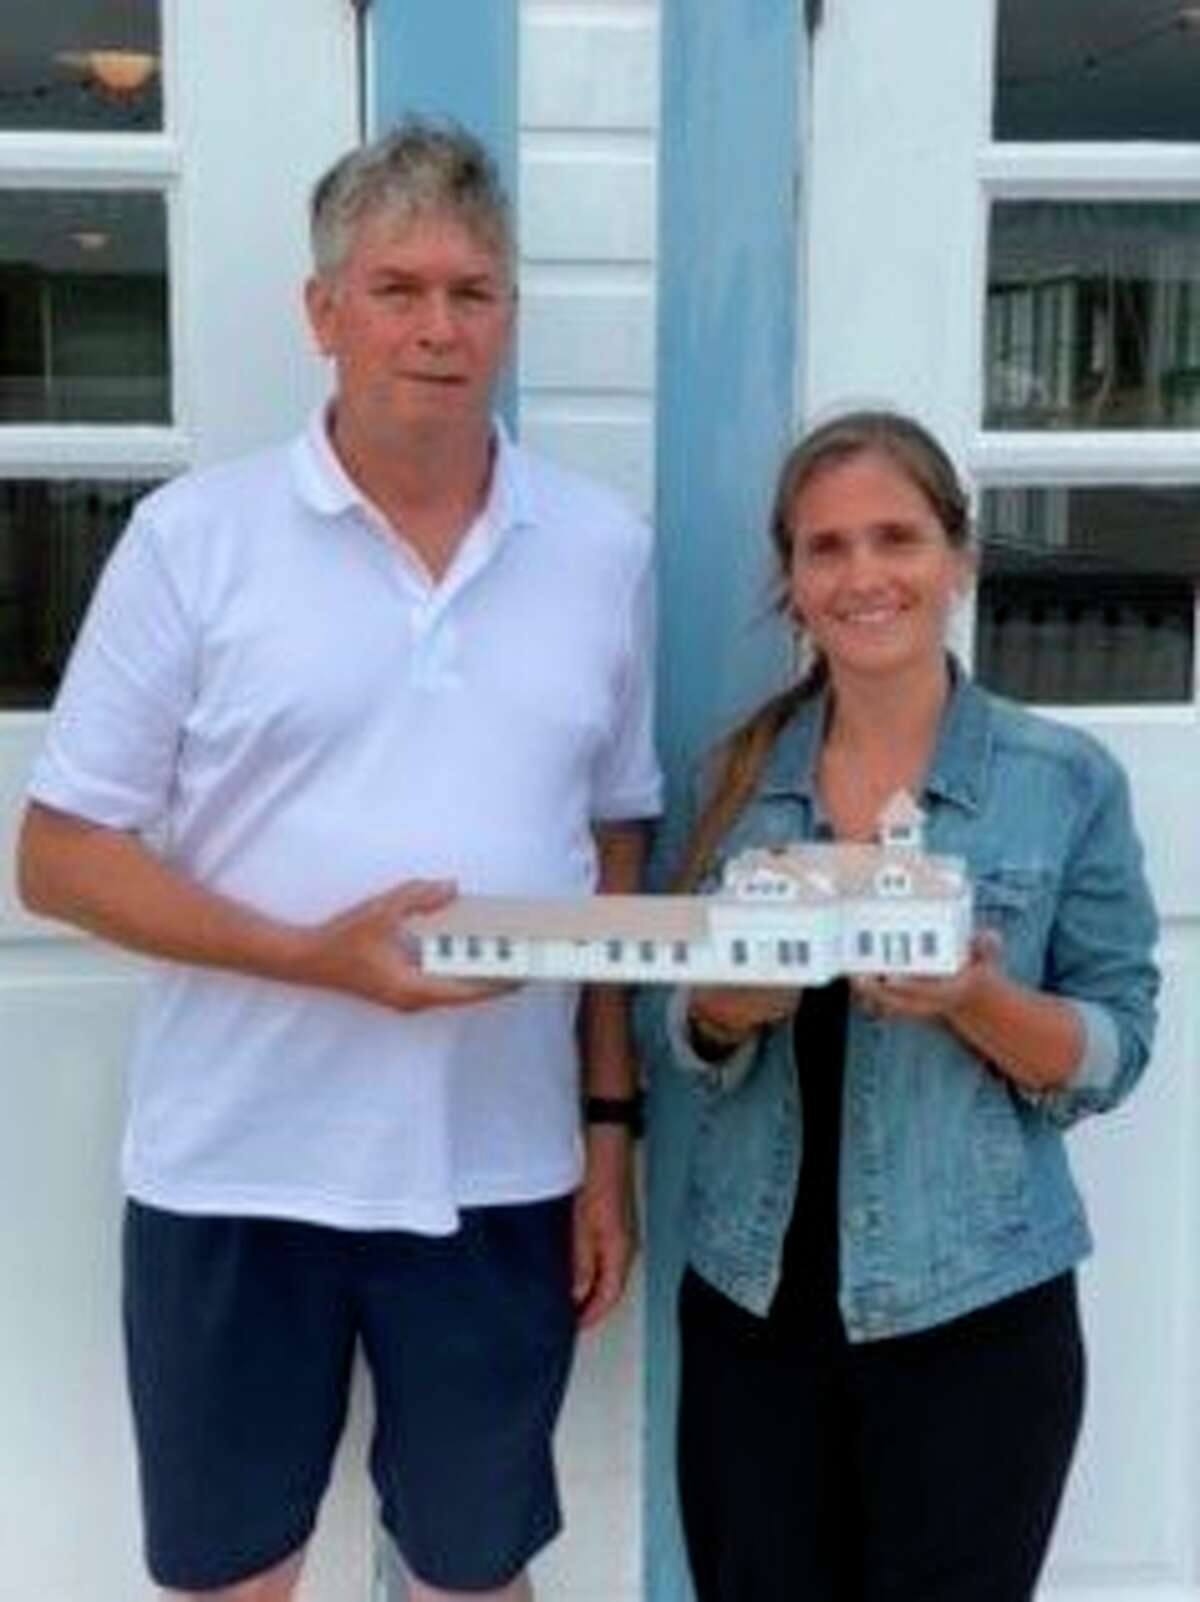 Ralph Moxley and Kristine Mills with Moxley's H-O scale model of the Elberta Lifesaving Station, which was on display for a day during a presentation on Moxley's 330 square foot model of a portion of the Ann Arbor Railroad from Cadillac to Elberta. (Courtesy Photo)